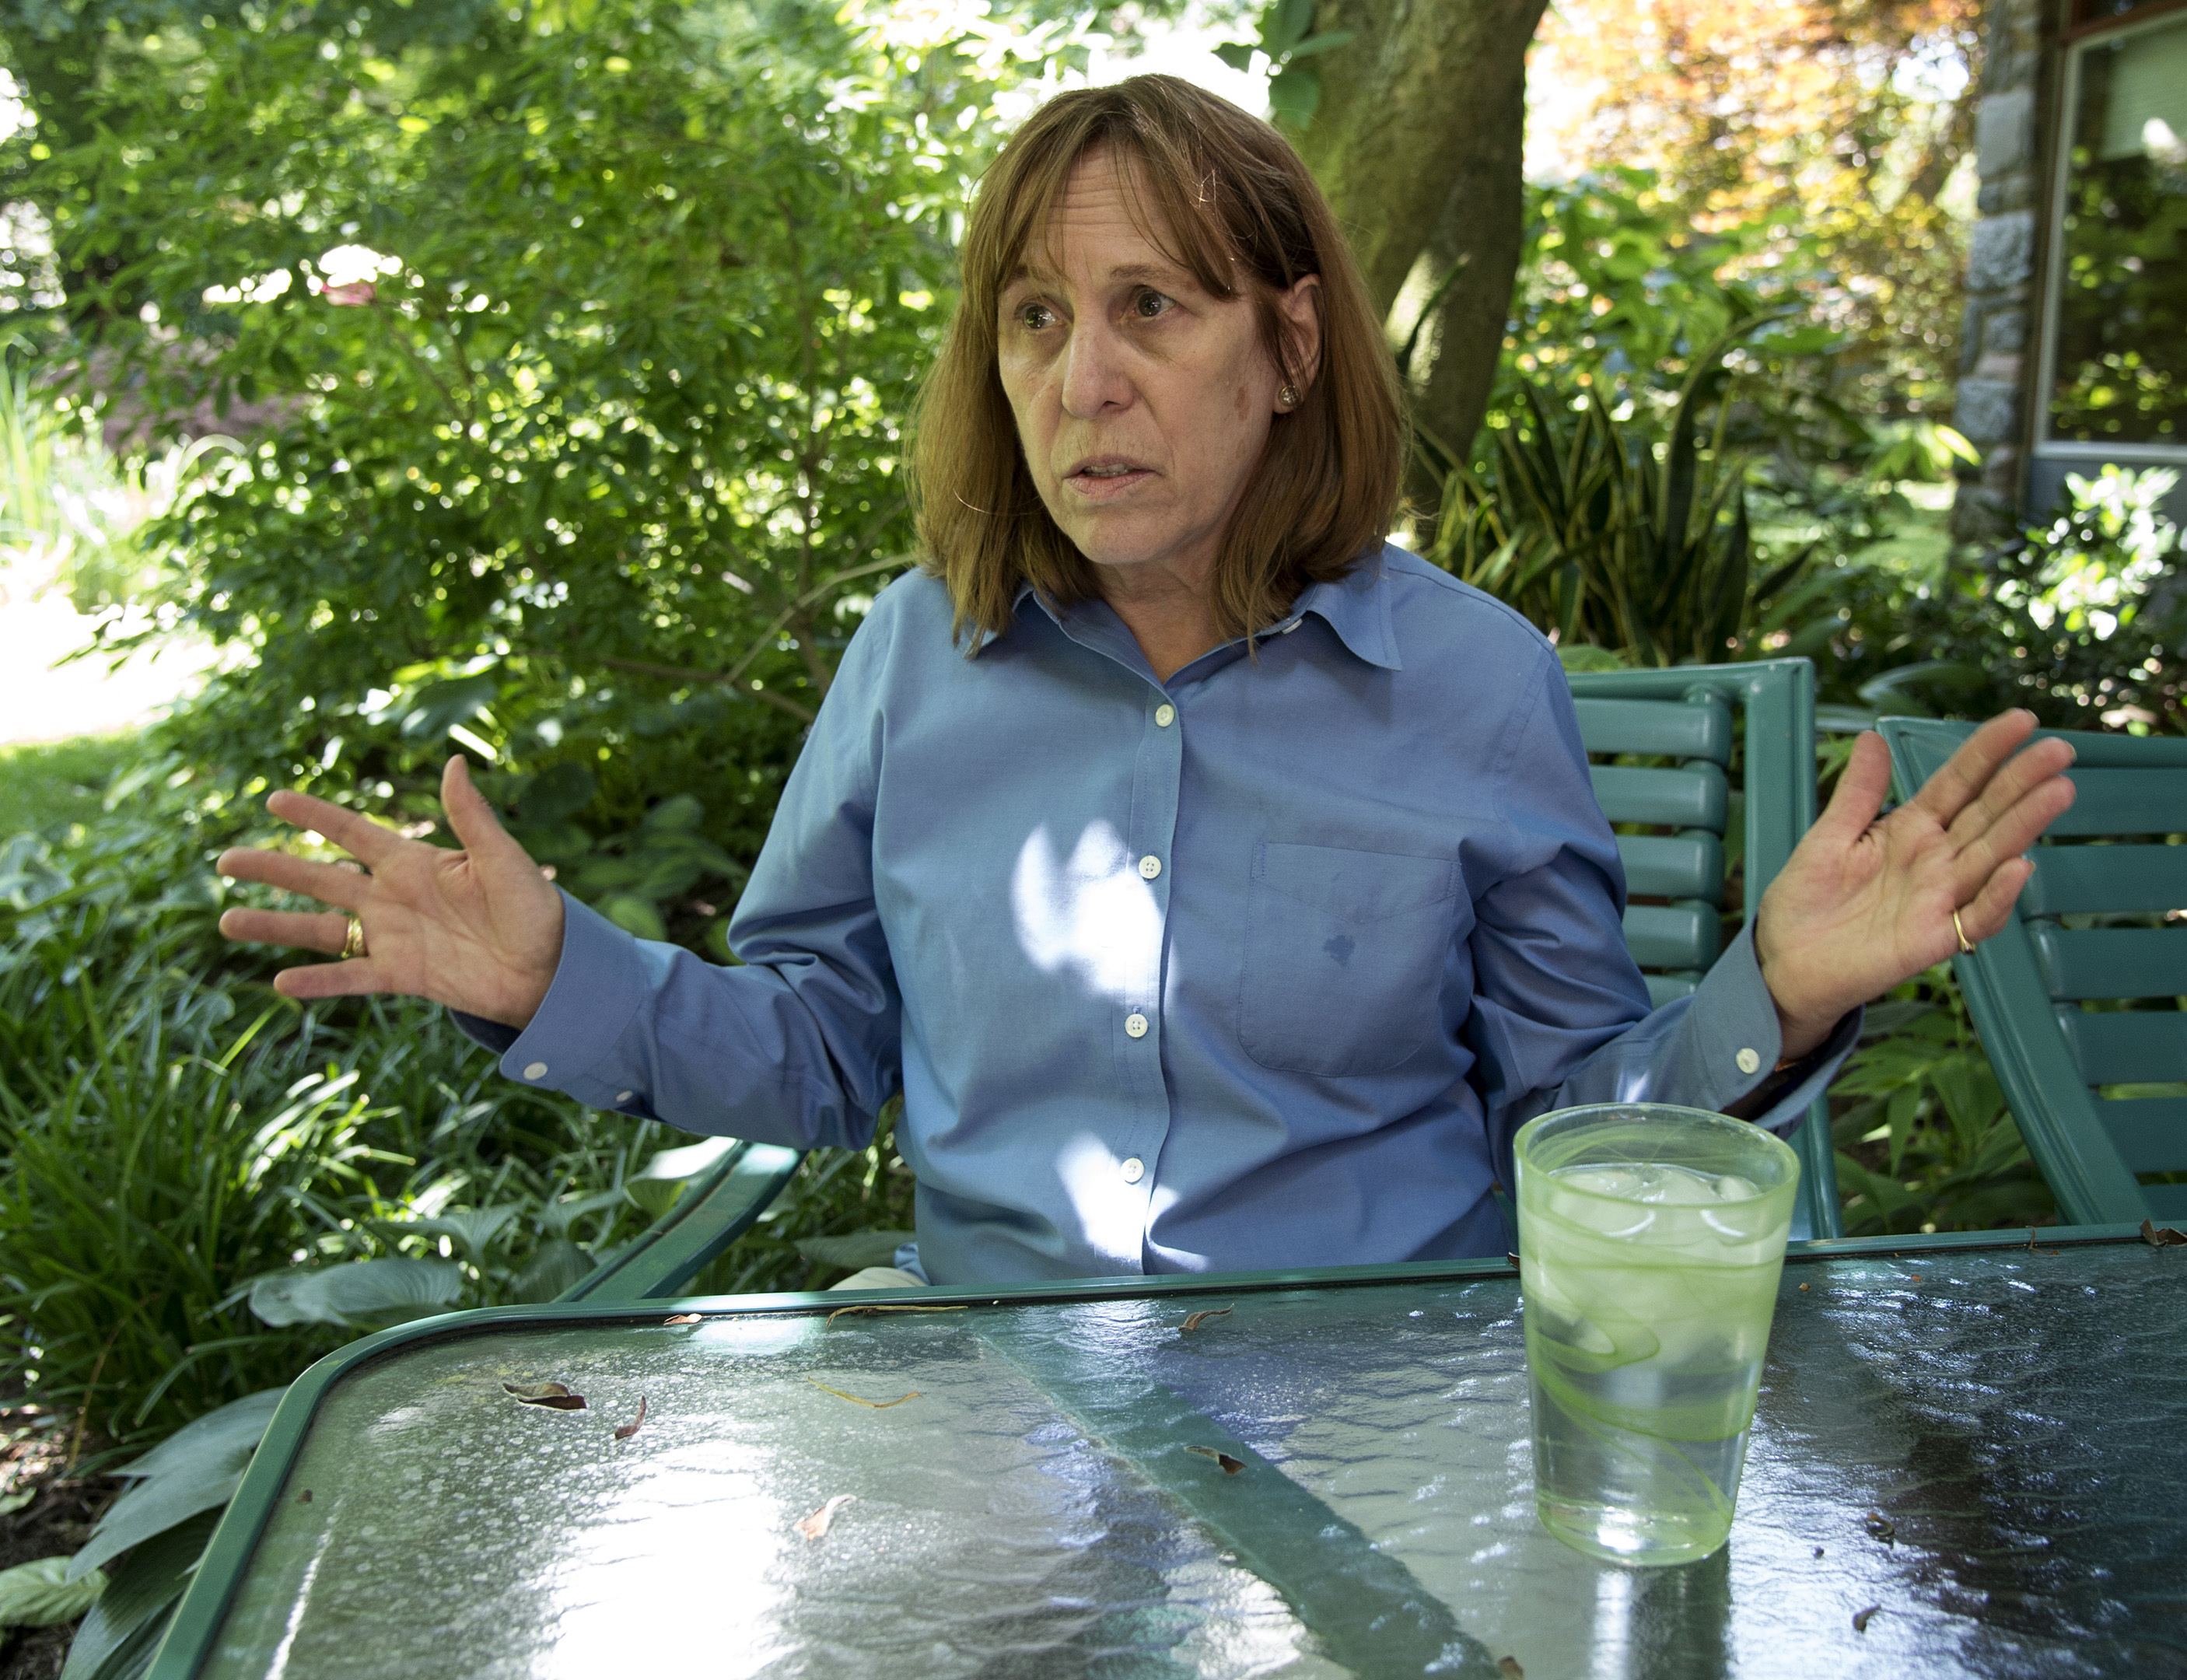 Suzanne Durand lives near Devil'sPool and has had to deal with all sorts of nasty things.